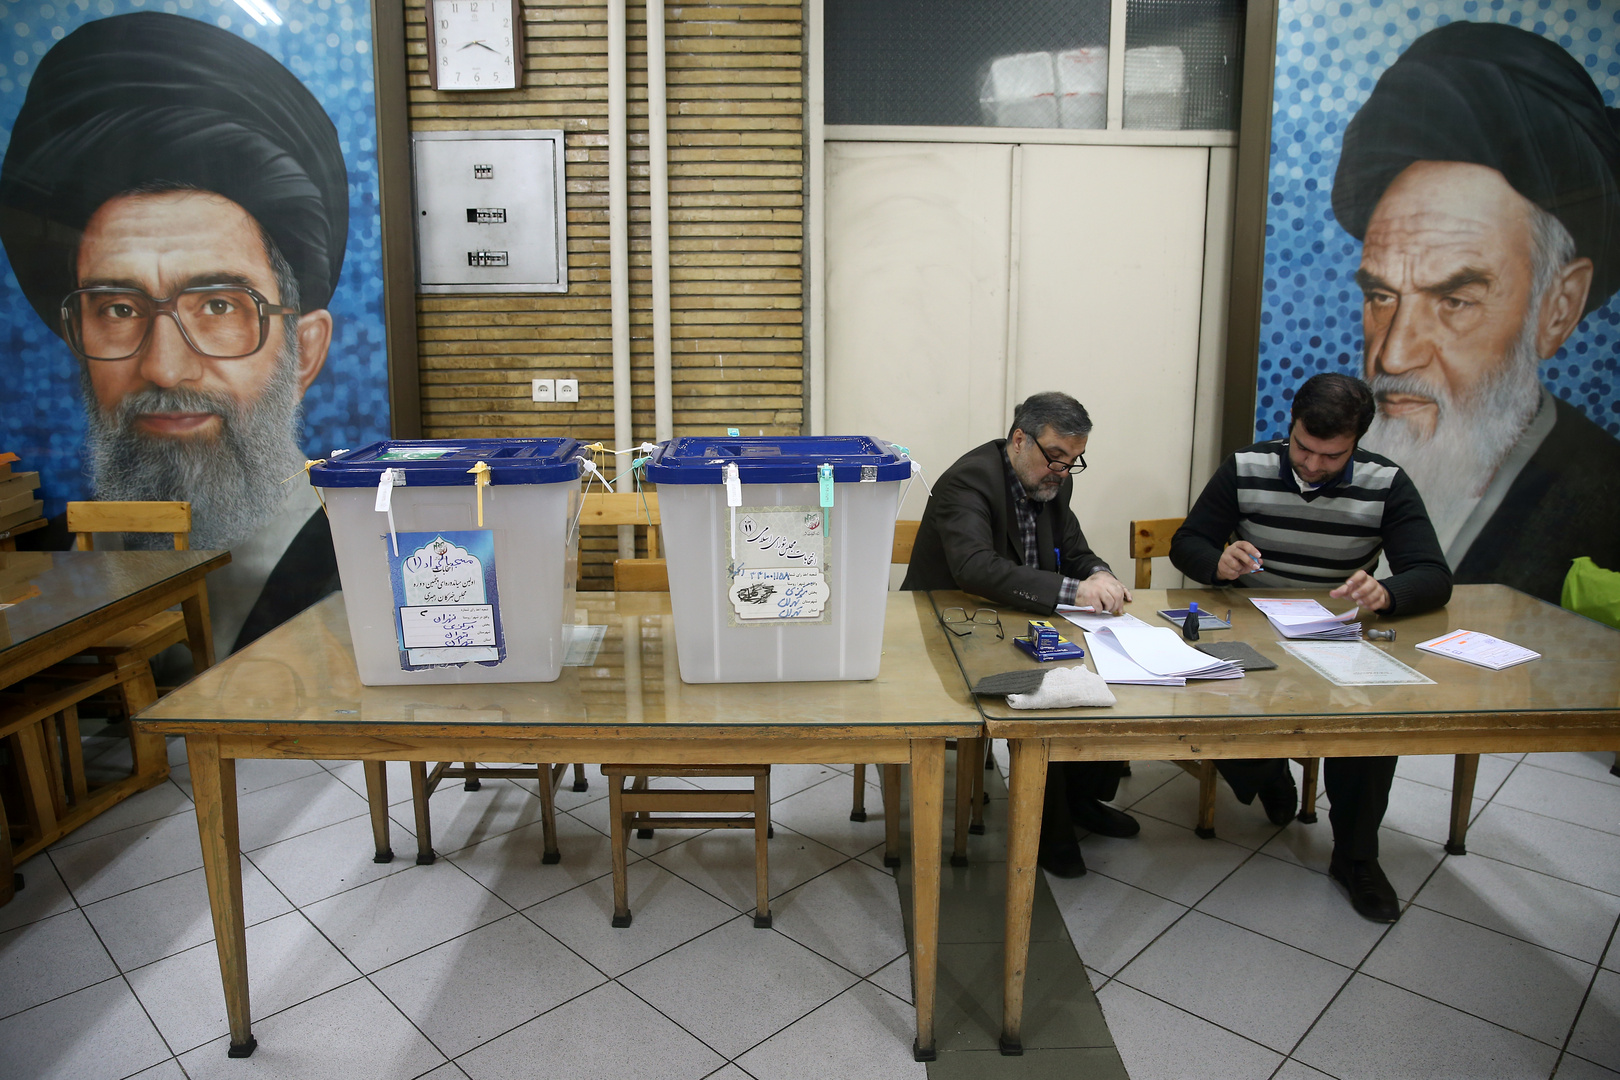 Iranian citizens residing in Iraq can participate in the presidential elections, Masjedi says